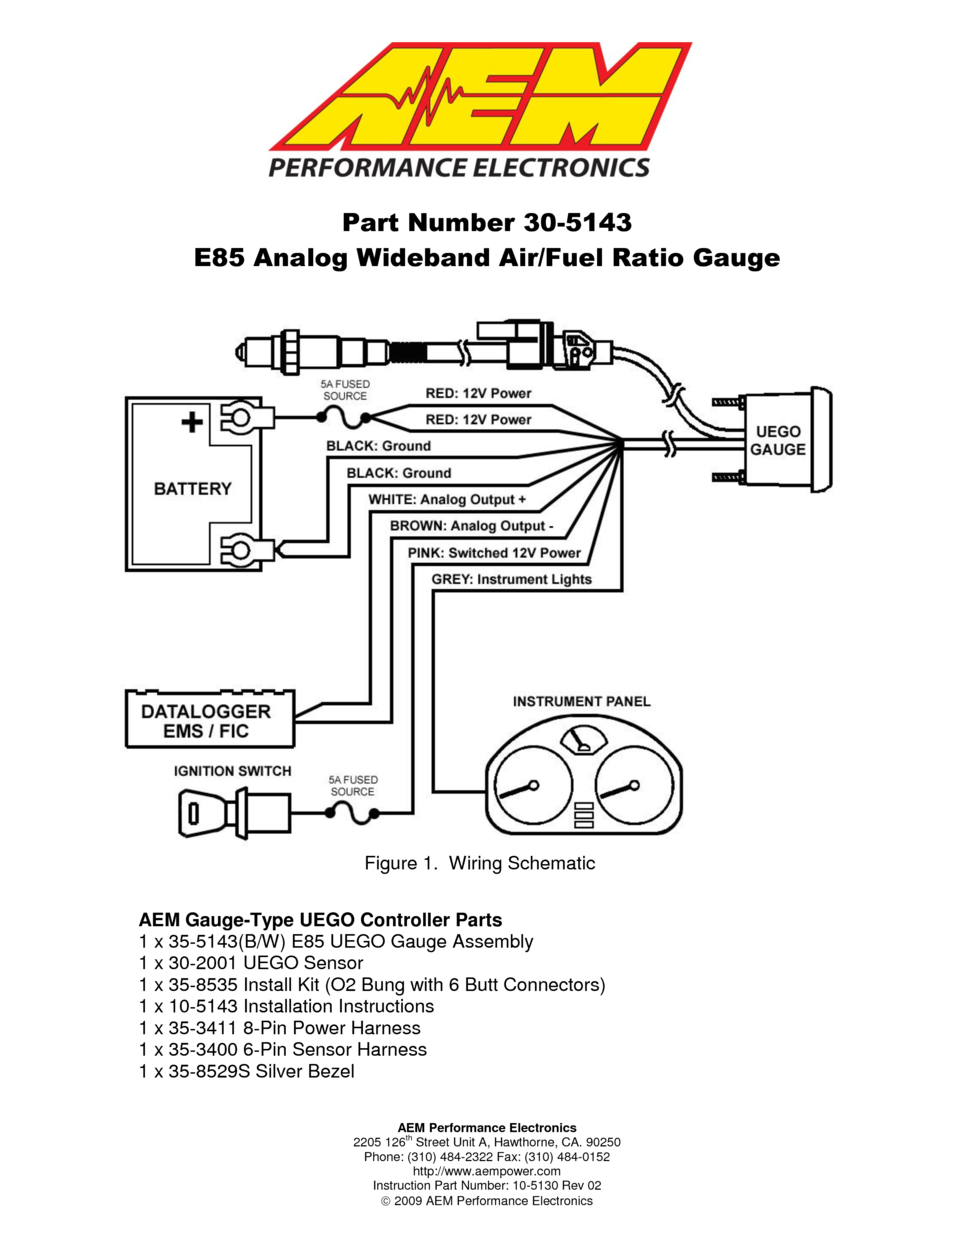 AEM og E85 Wideband UEGO Gauge E85 AFR 305143 User Manual Air Fuel Ratio Meter Wiring Diagram on air engine diagram, air clutch diagram, transmission diagram, air torque diagram, air mixture diagram, air density diagram,